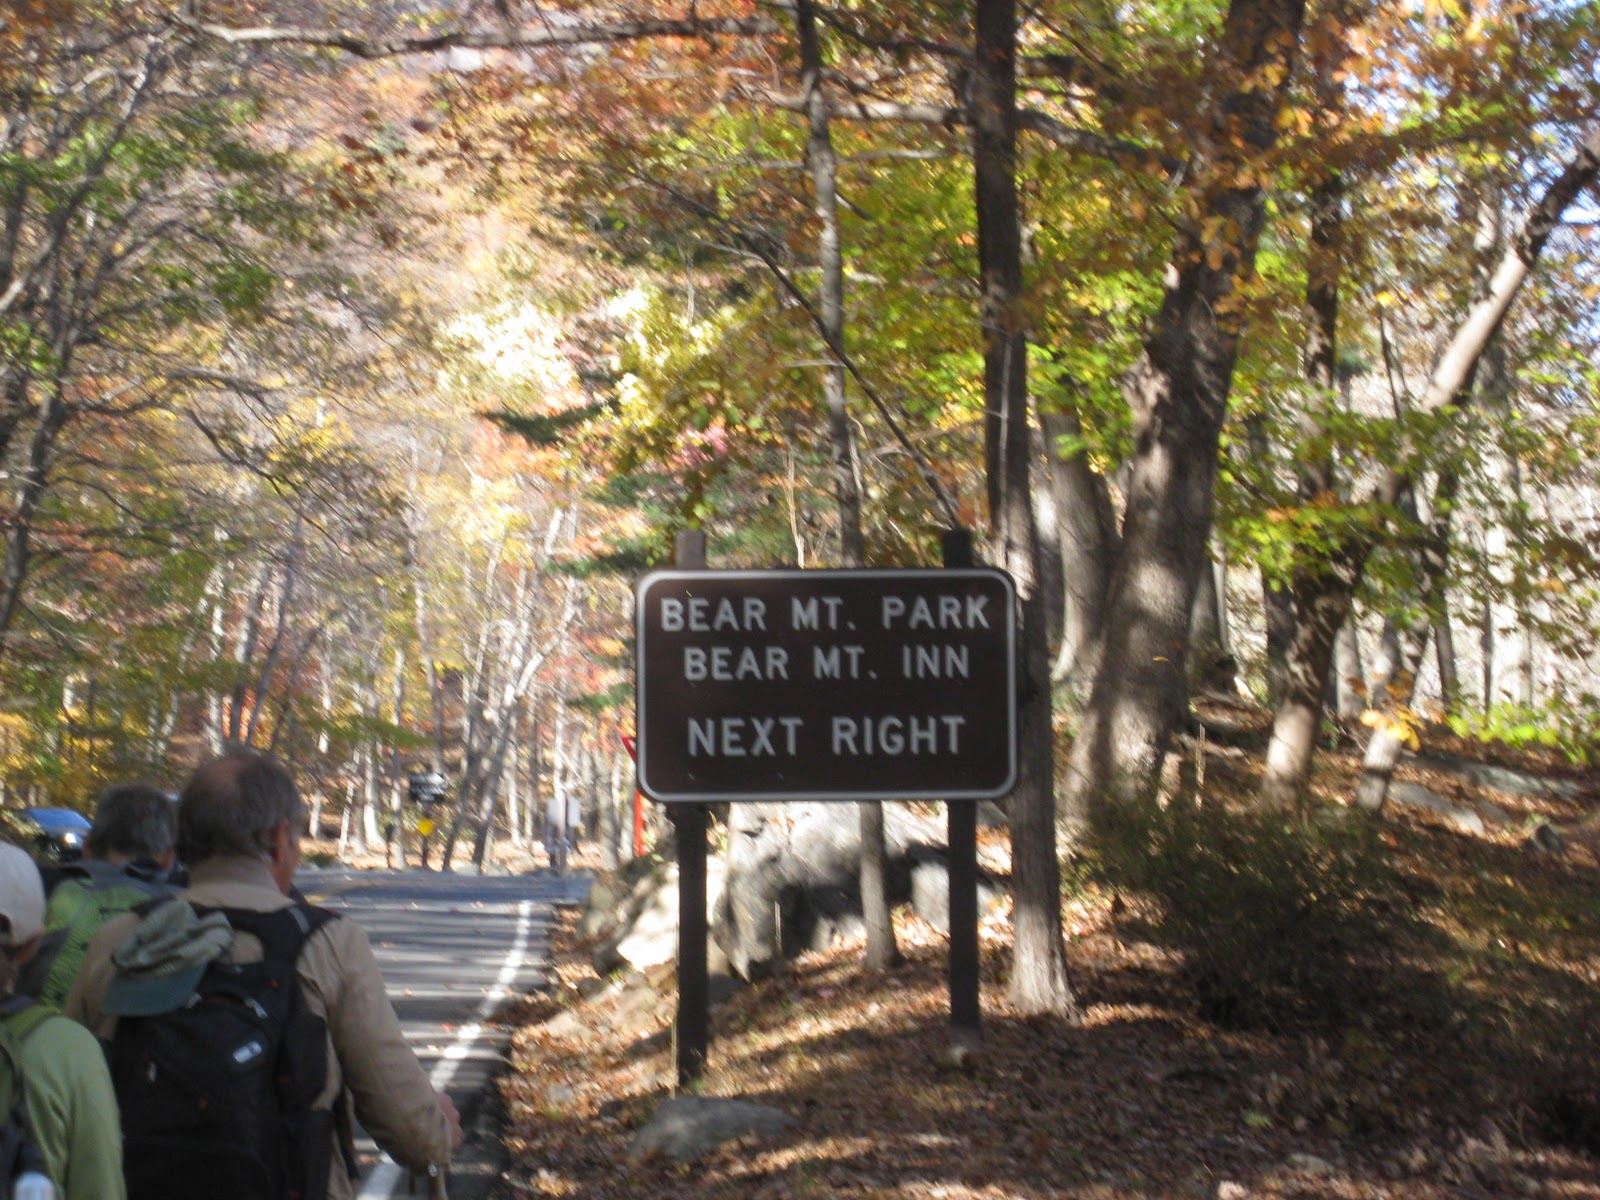 Trail Tramps: Hike Bear Mountain NY,Trails or Climb Steps to Top